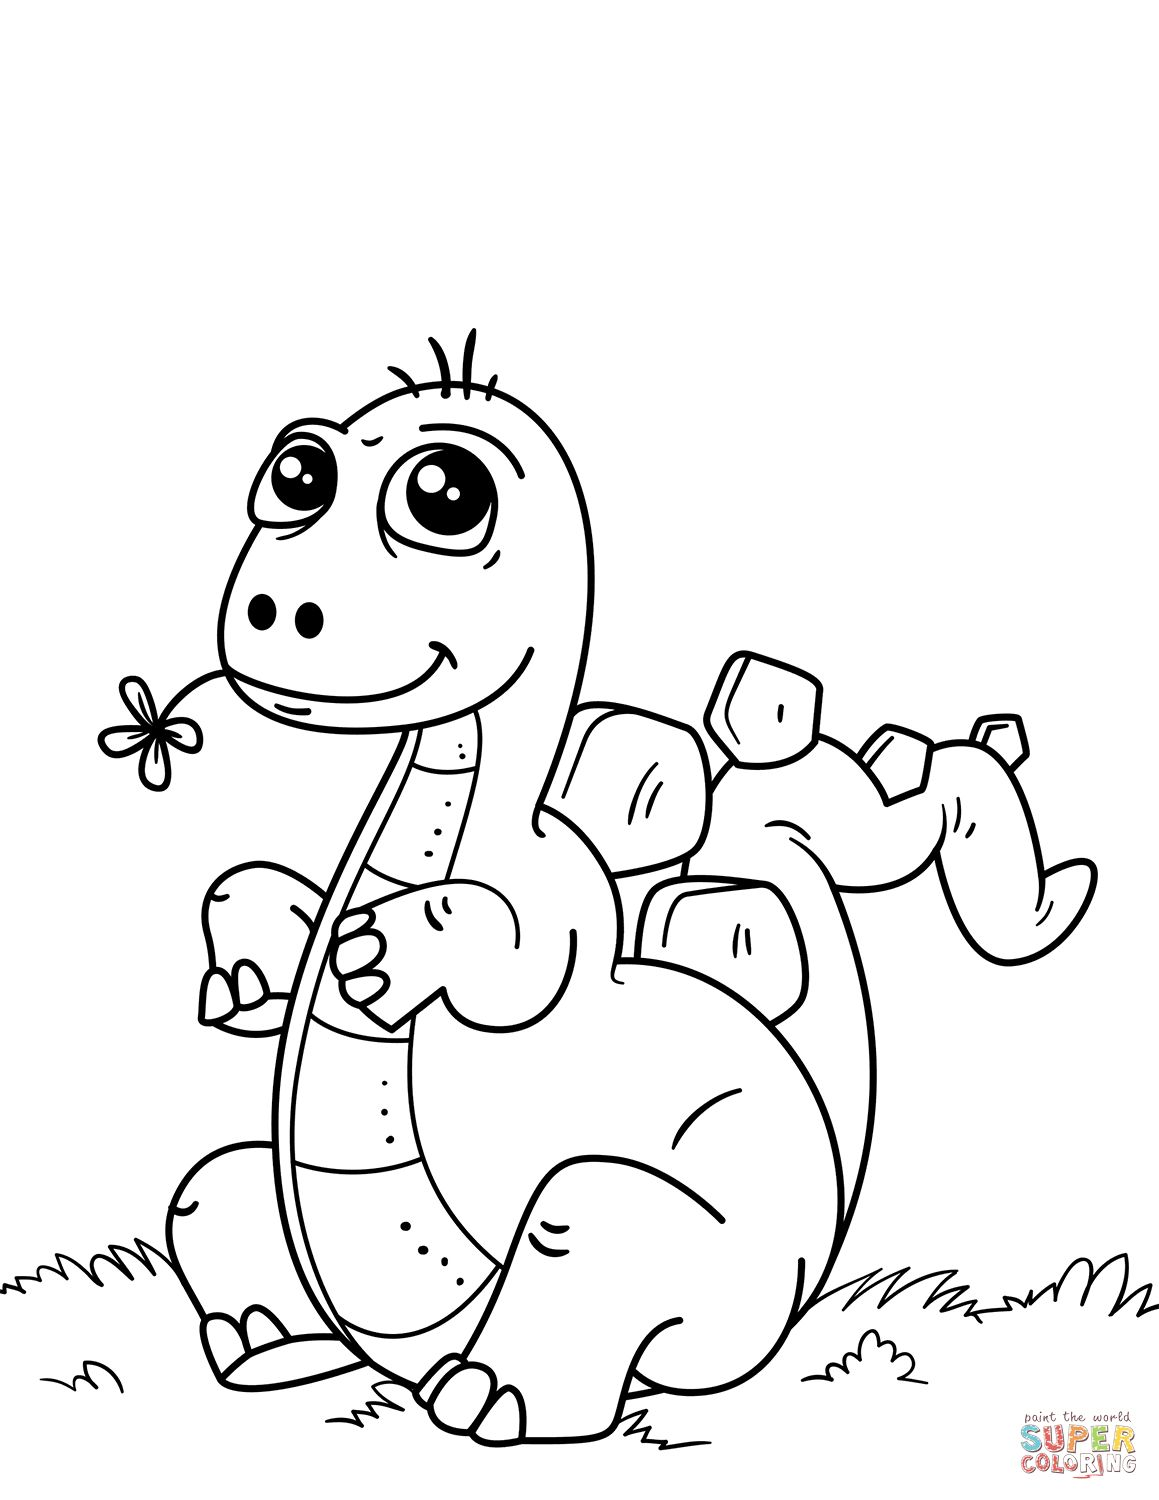 Dinosaur Coloring Pages Cute Little Dinosaur Coloring Page